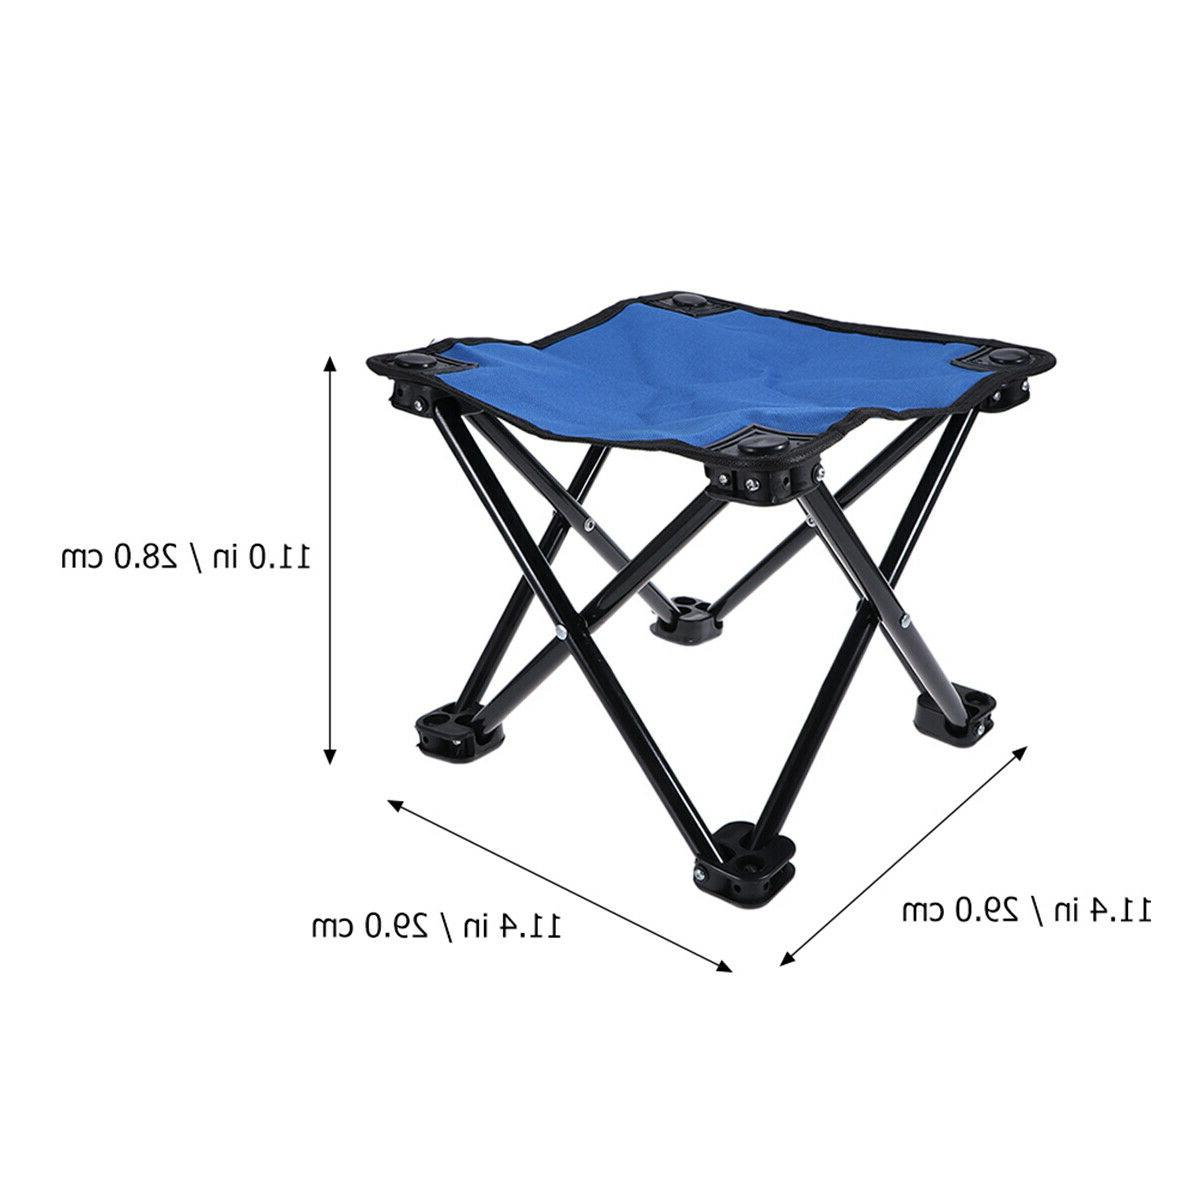 Foldable Fishing Chair Fishing Gear Camping Stool Seat for